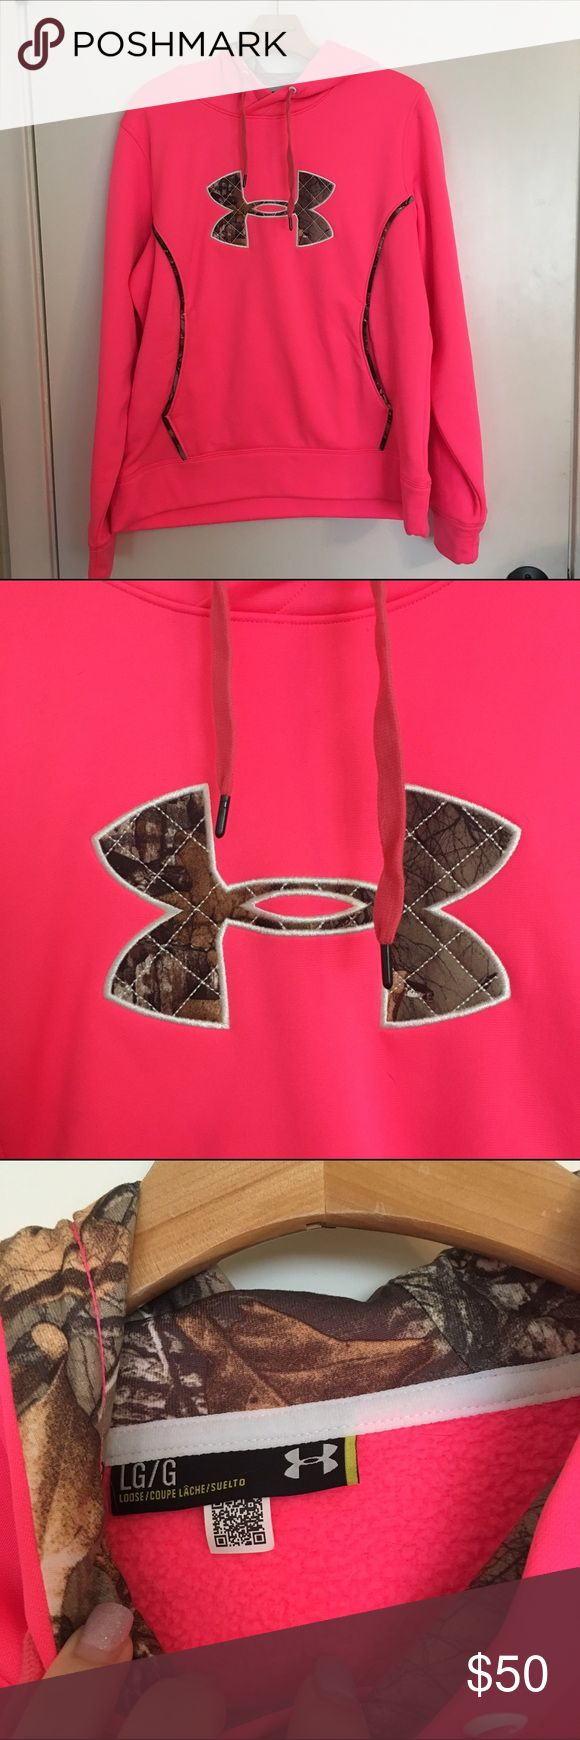 Under Armour hot pink sweater L Great as a comfortable baggy medium. Only worn once. Just too bright for me!! I believe this is water resistant I do not have the tag anymore. Camo hood and detailing. Under Armour Jackets & Coats